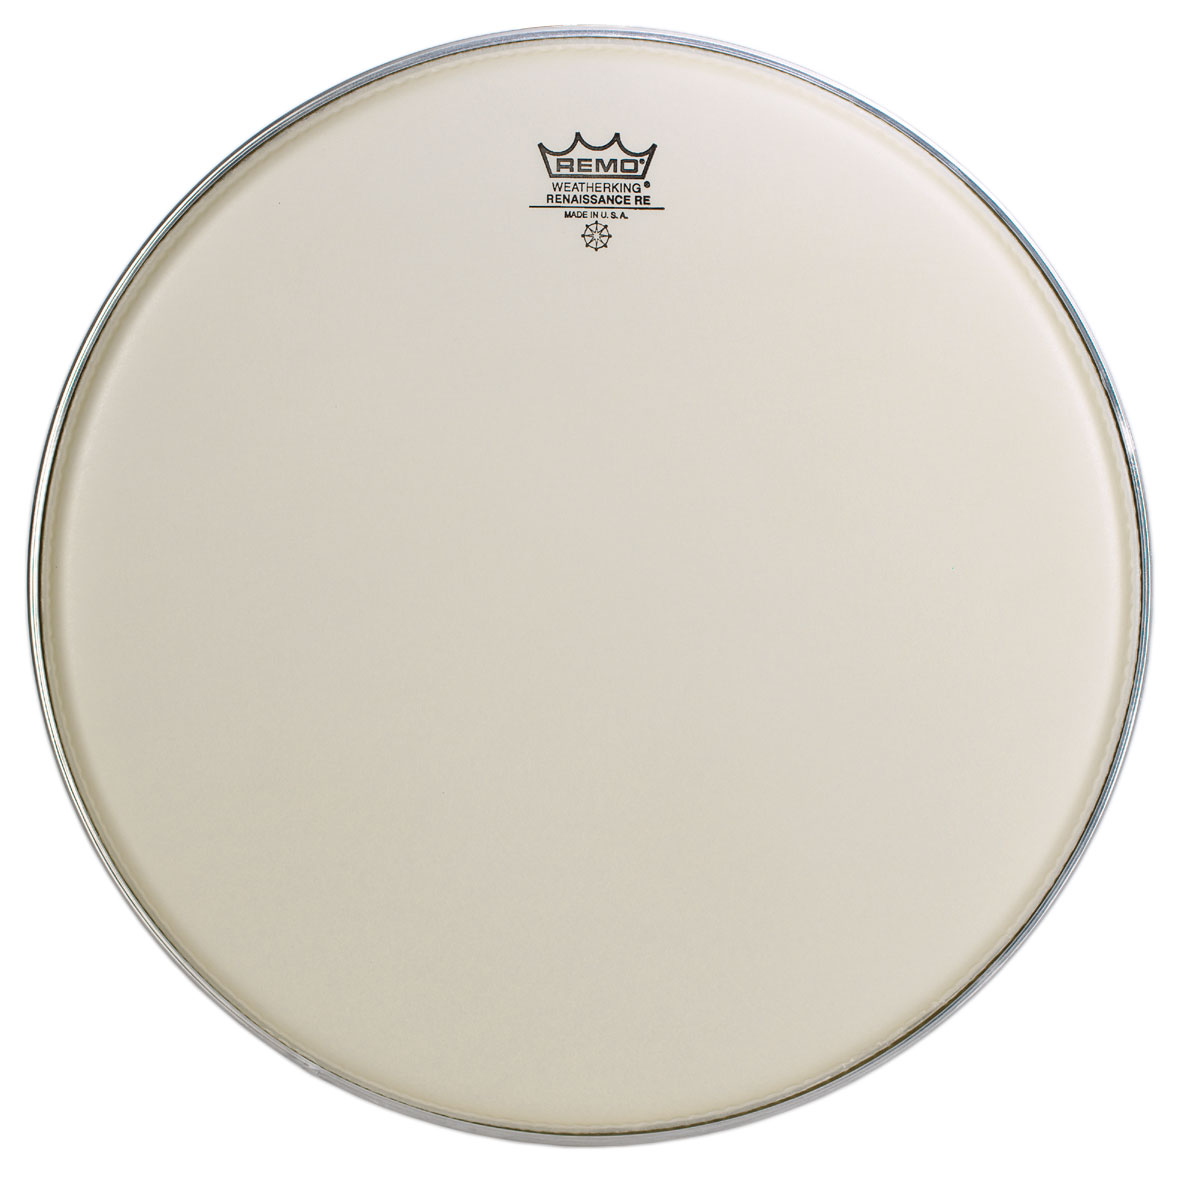 "Remo 6"" Emperor Renaissance Crimplock Marching Tenor Drum Head"